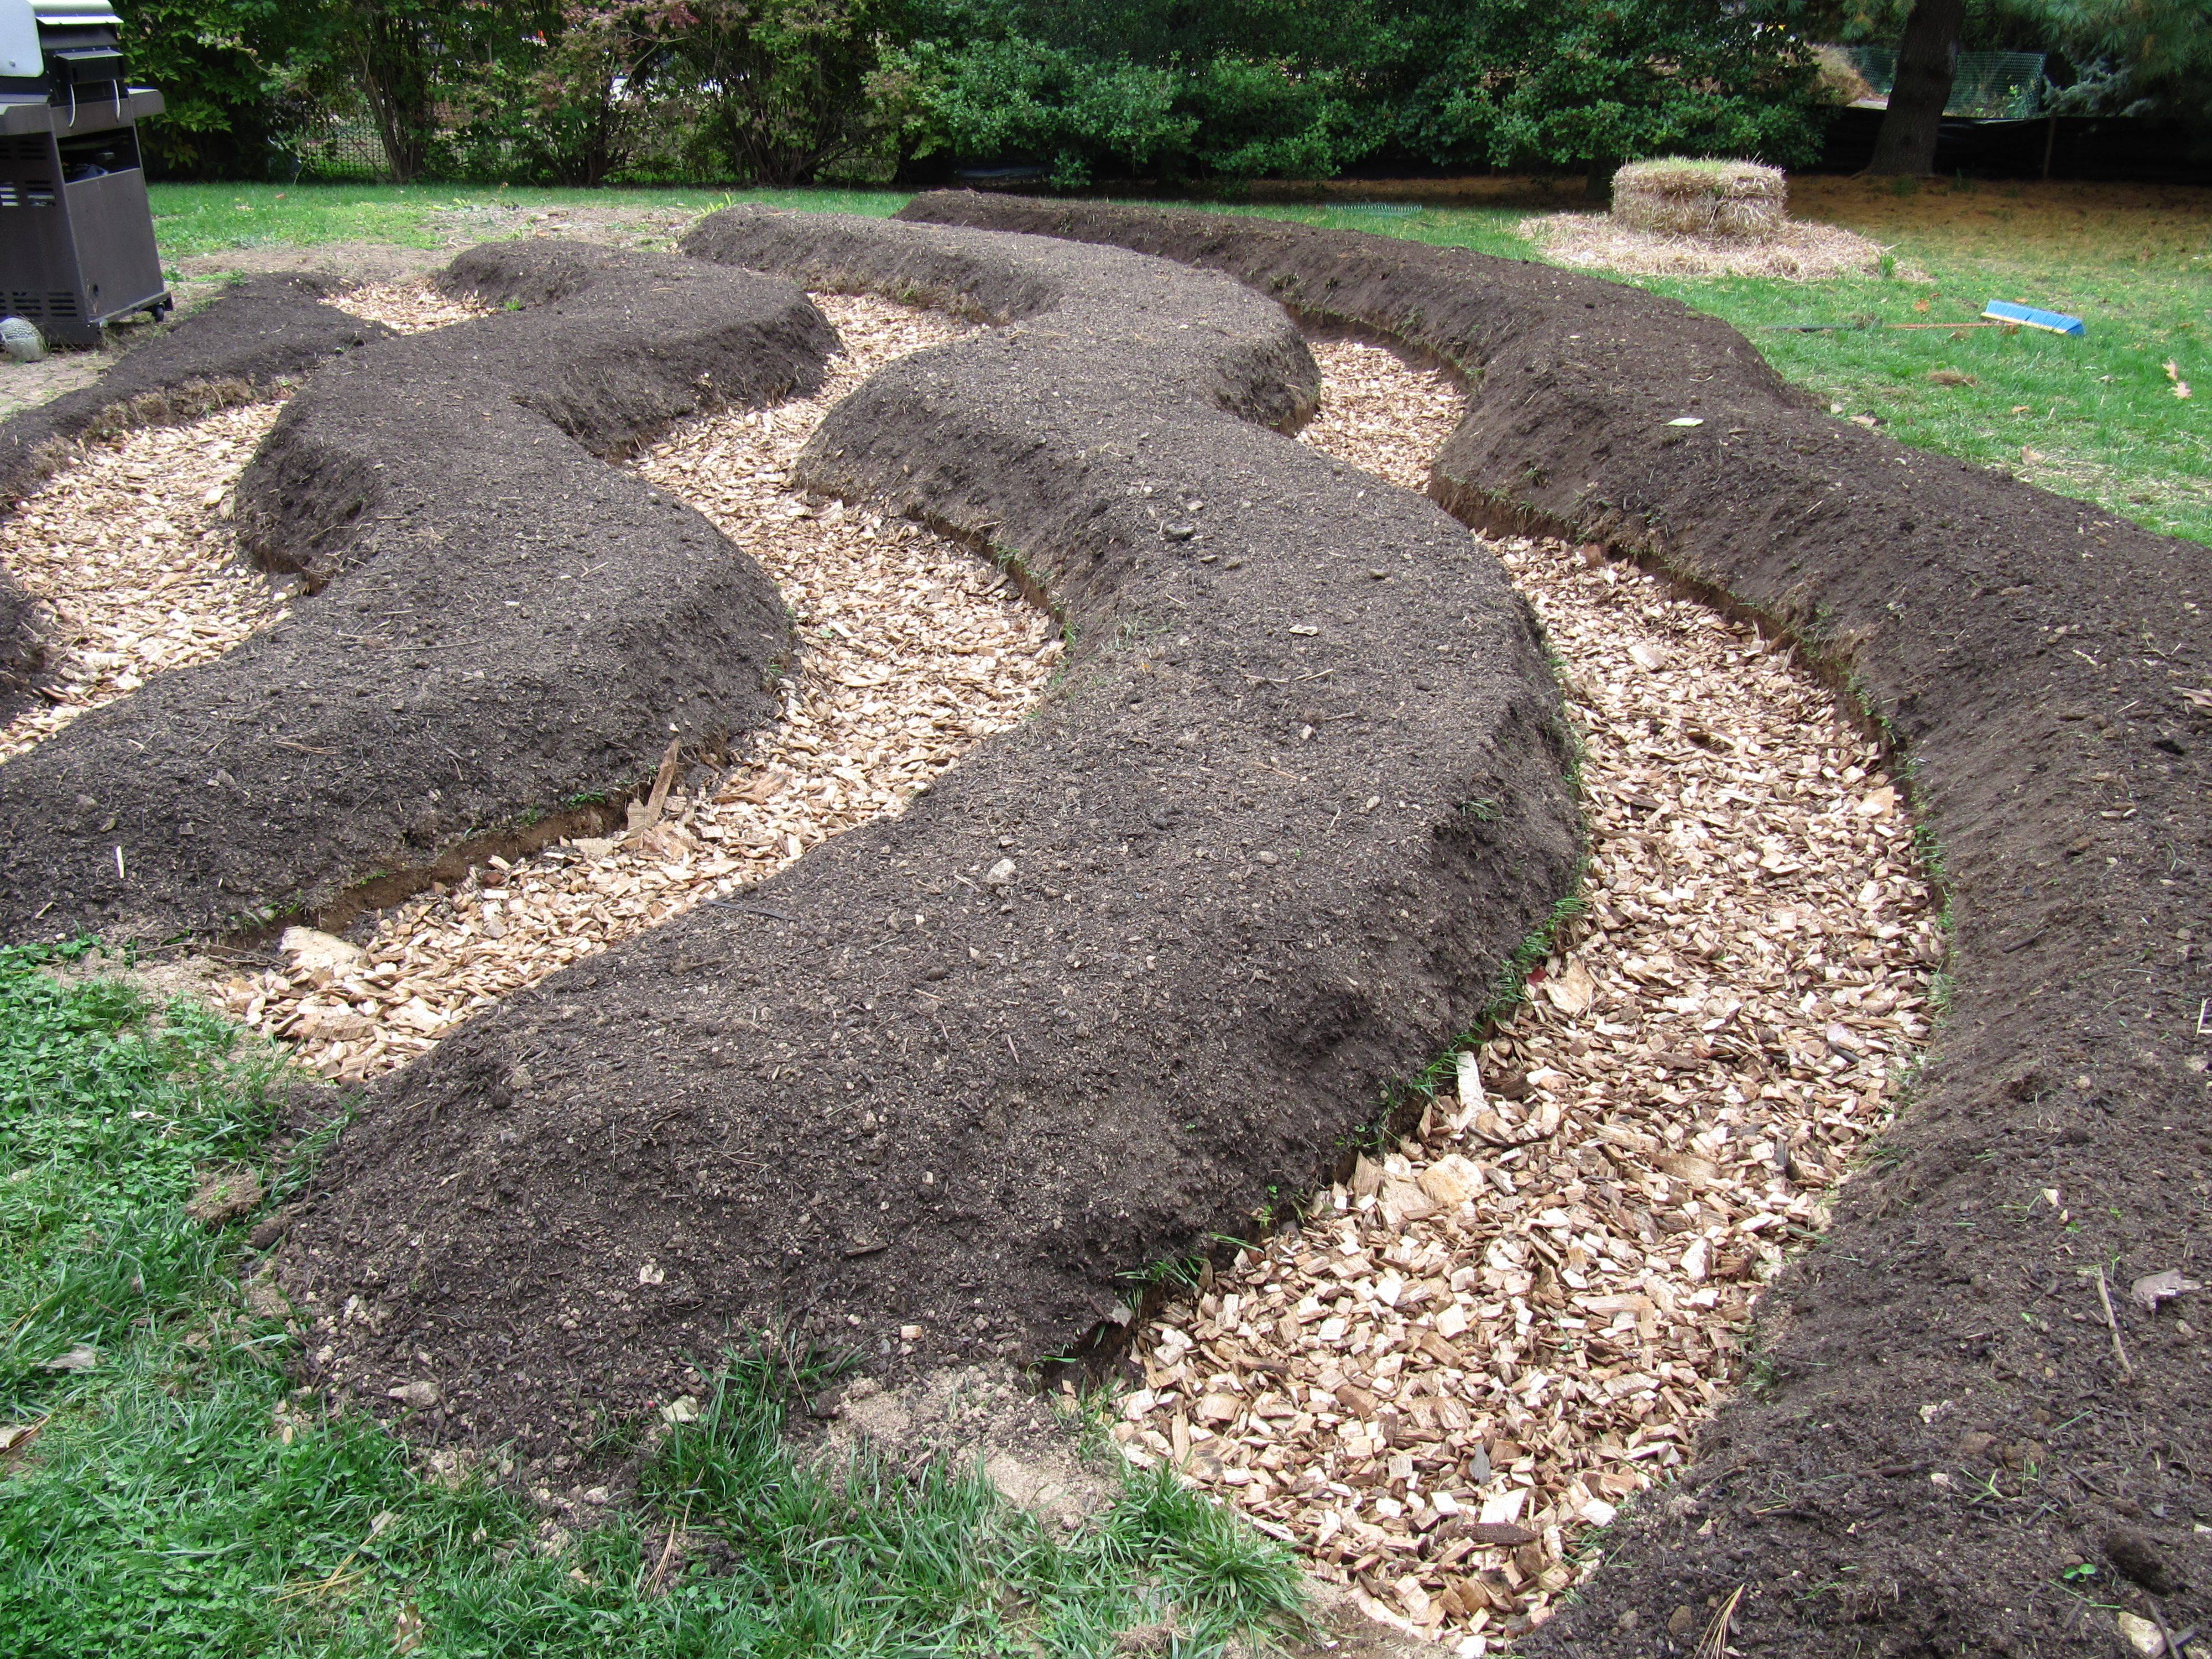 Growing A Vegetable Garden Raised Beds On Contour How To Layout A Garden  With Wood Chip Paths Organic Raised Beds, Simple Vegetable Beds Raised  Design ...